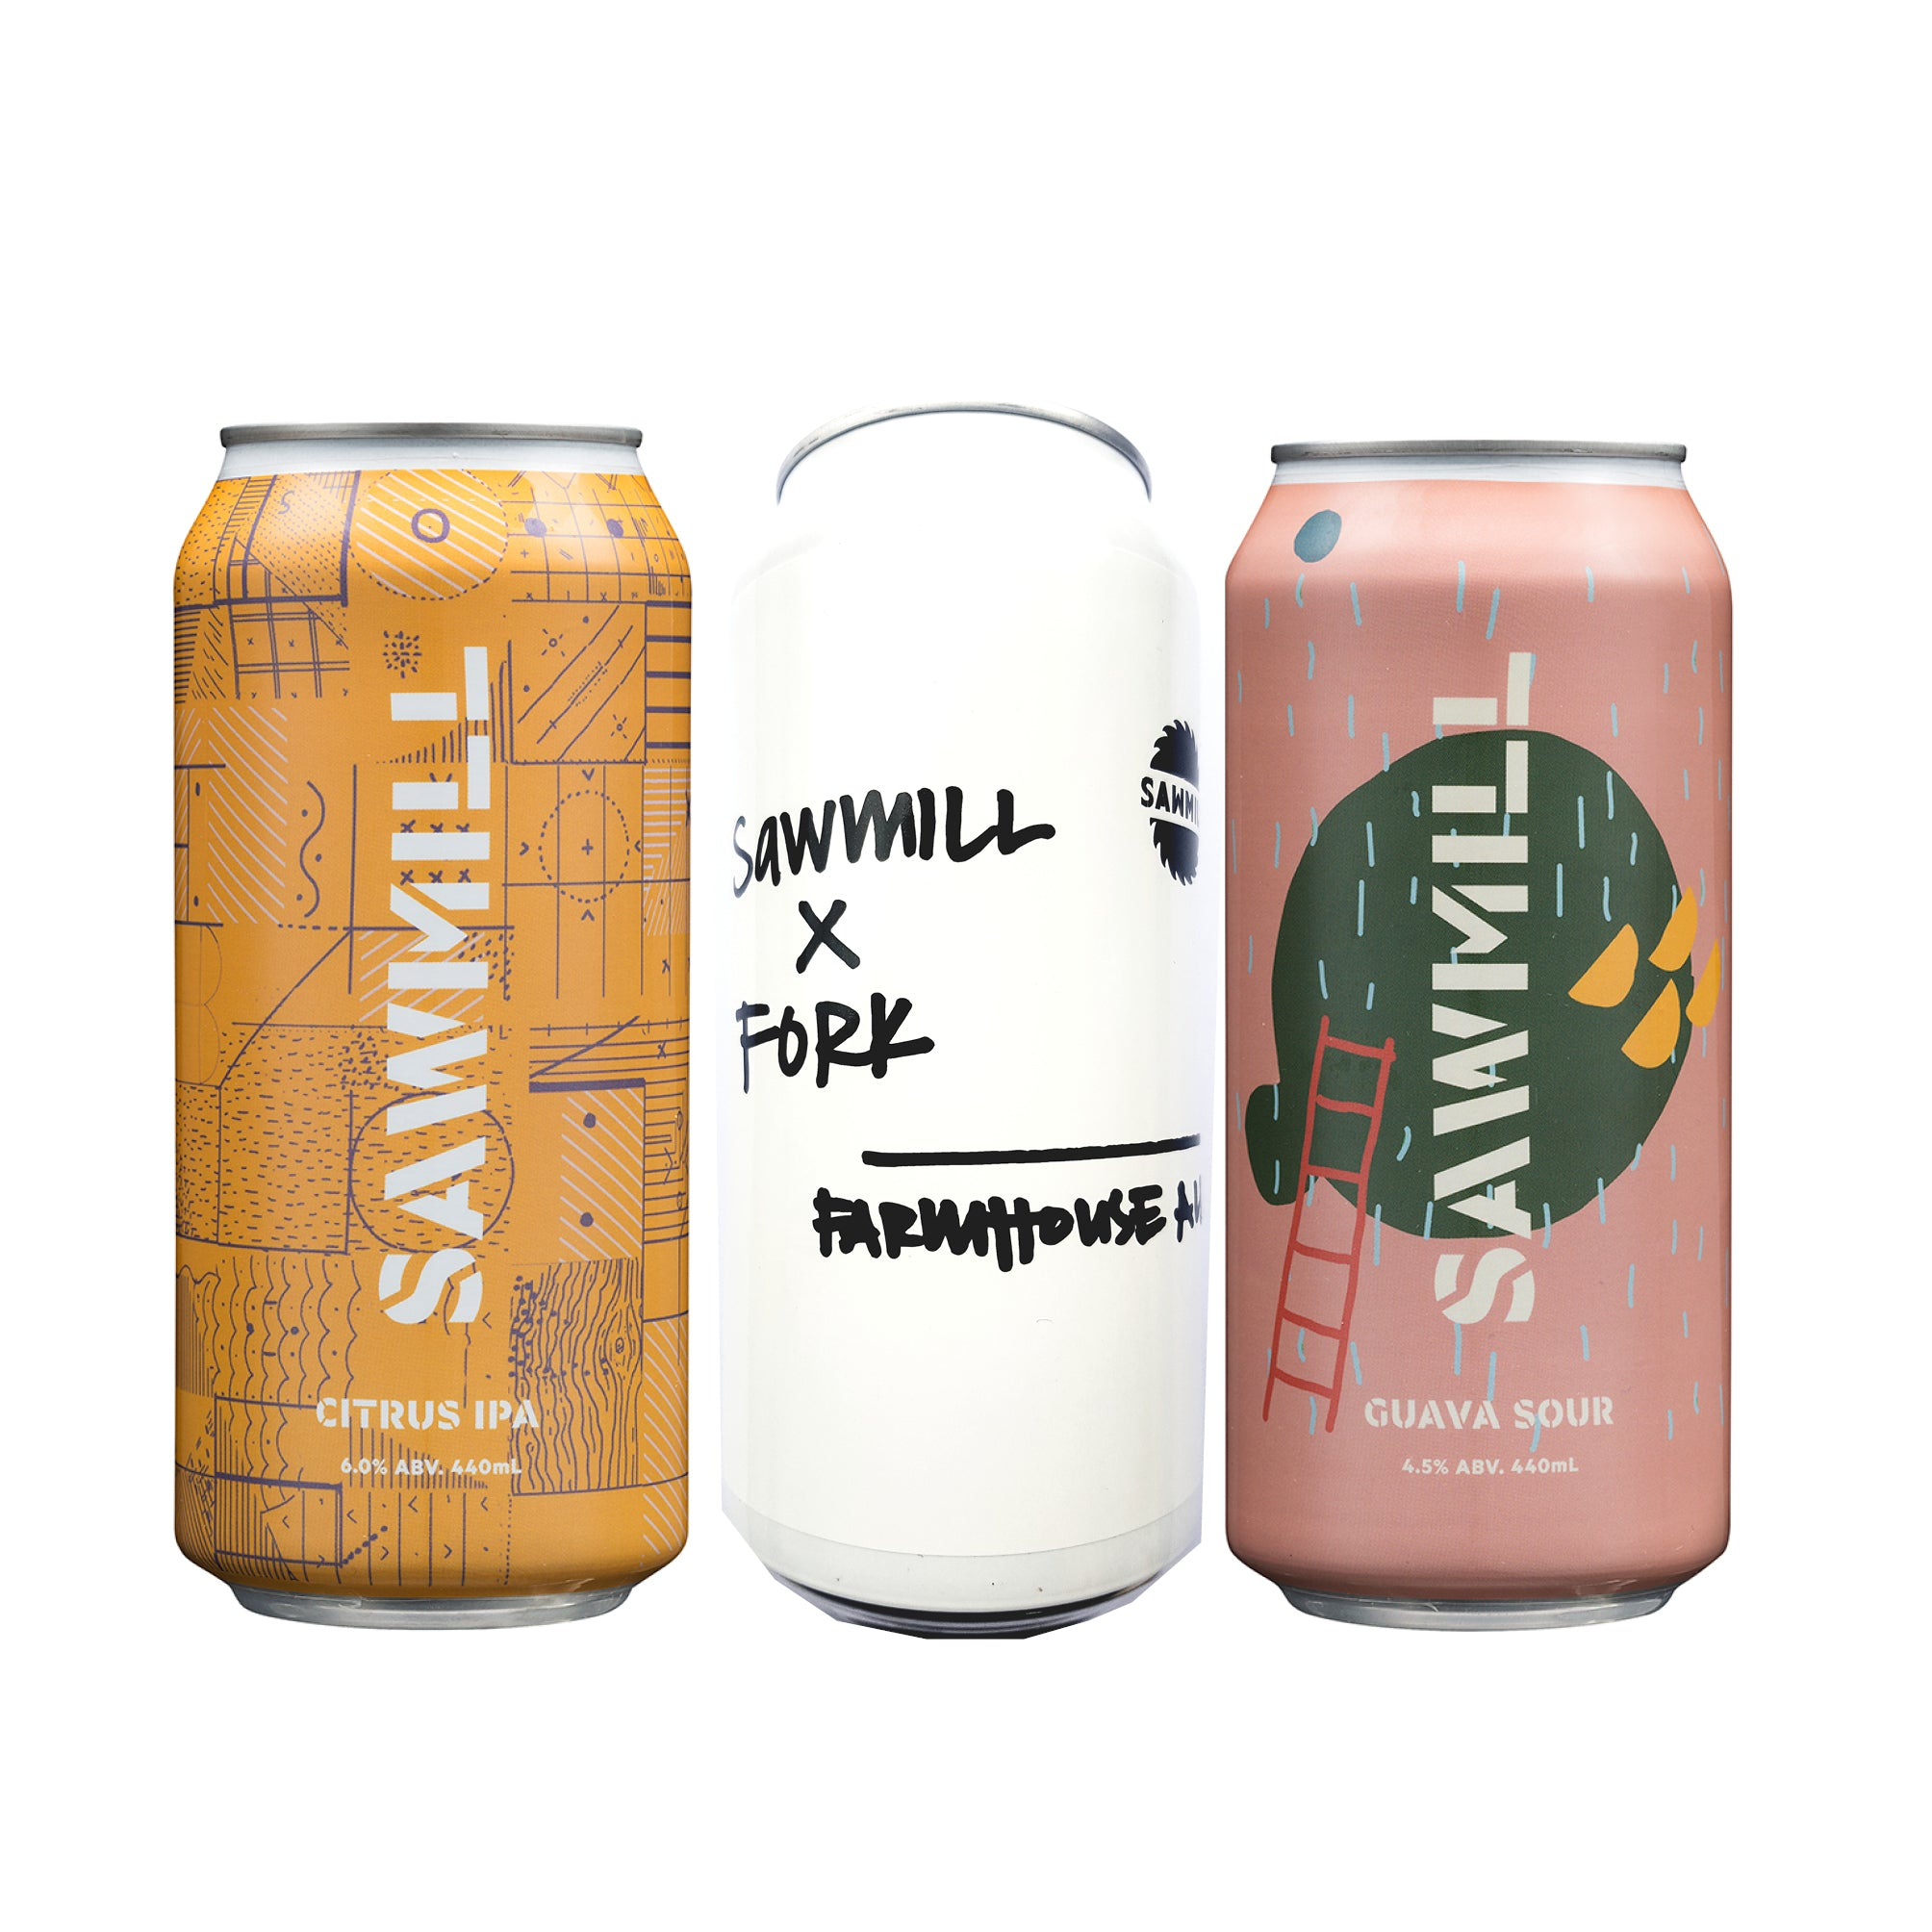 Sawmill Mixed pack - 12 x 440ml cans (4 of each)